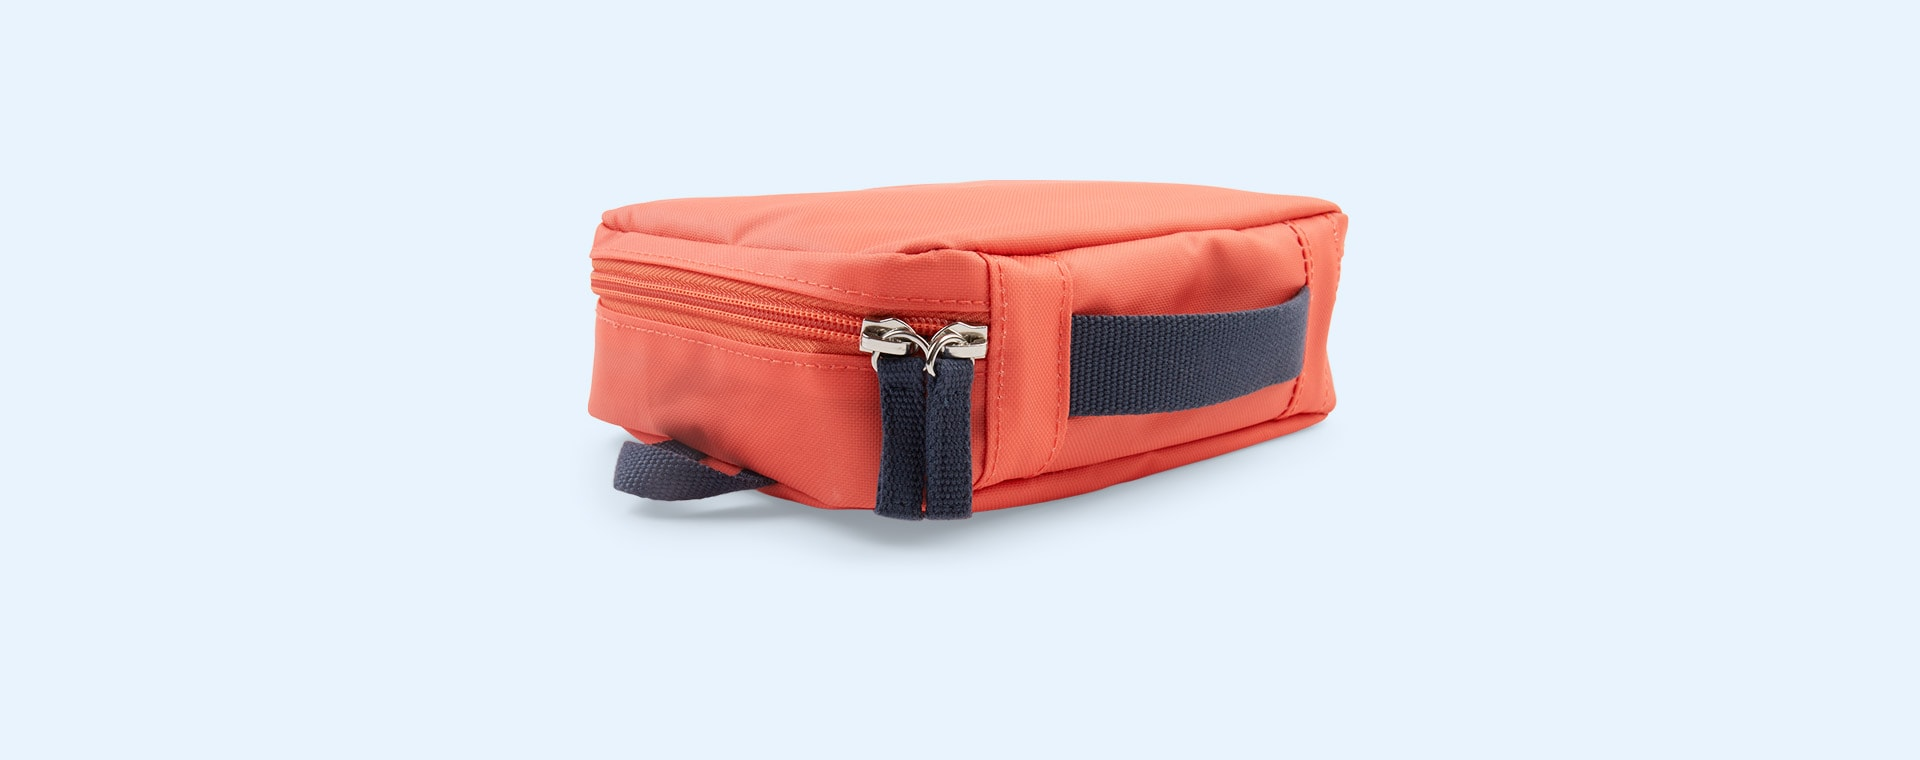 Coral / Storm EKOBO Go Repet Lunch Bag